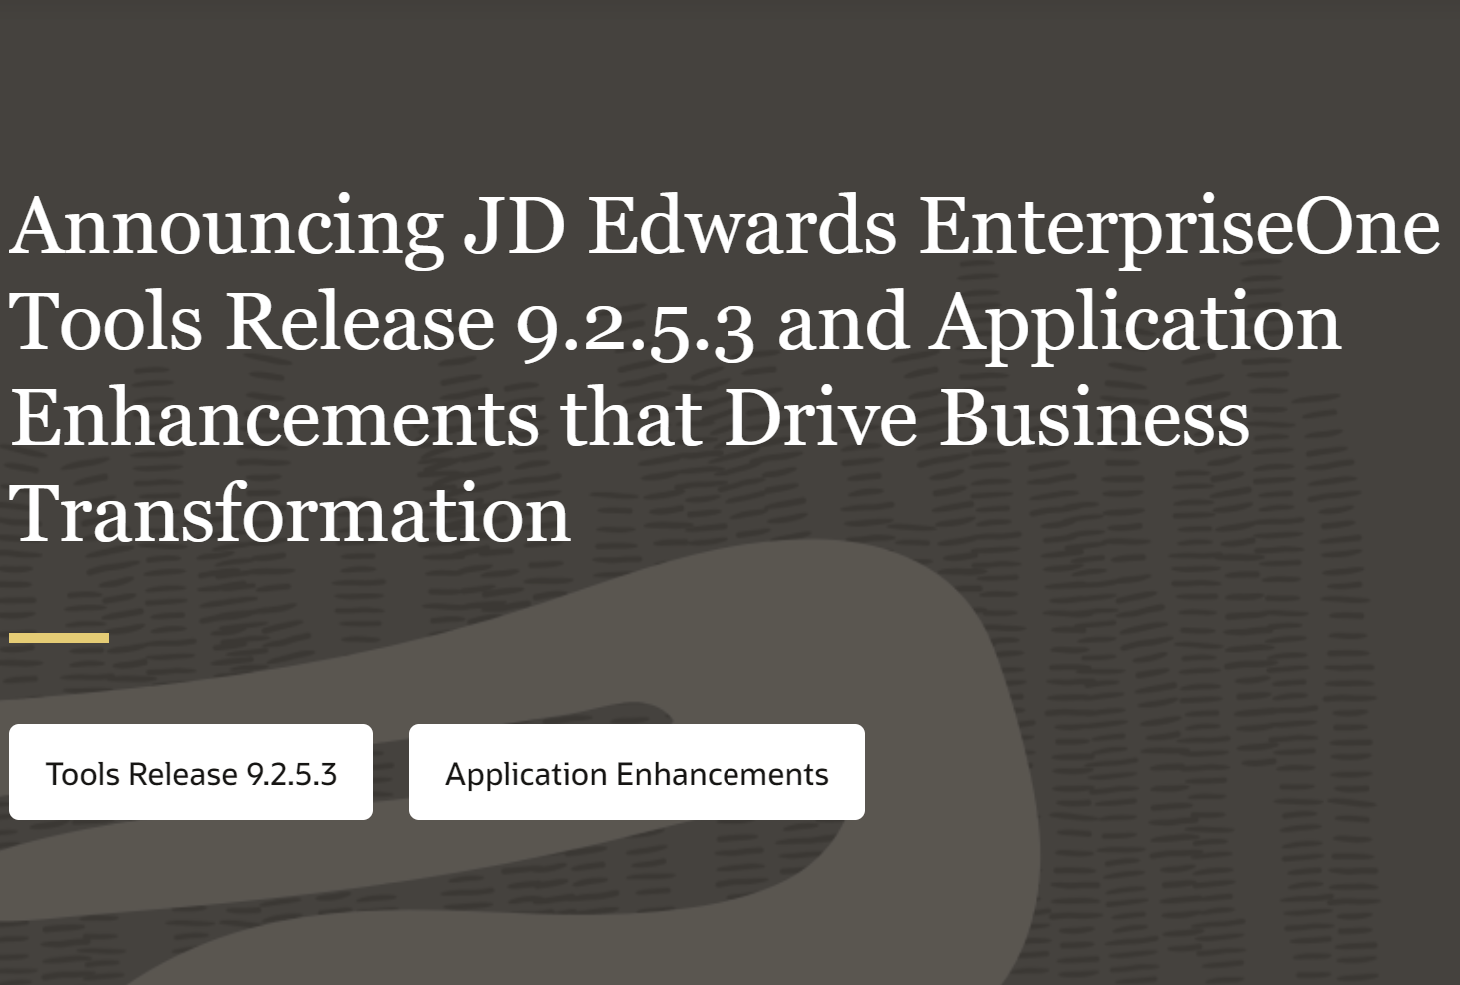 JD Edwards Announce Release 9.2.5.3